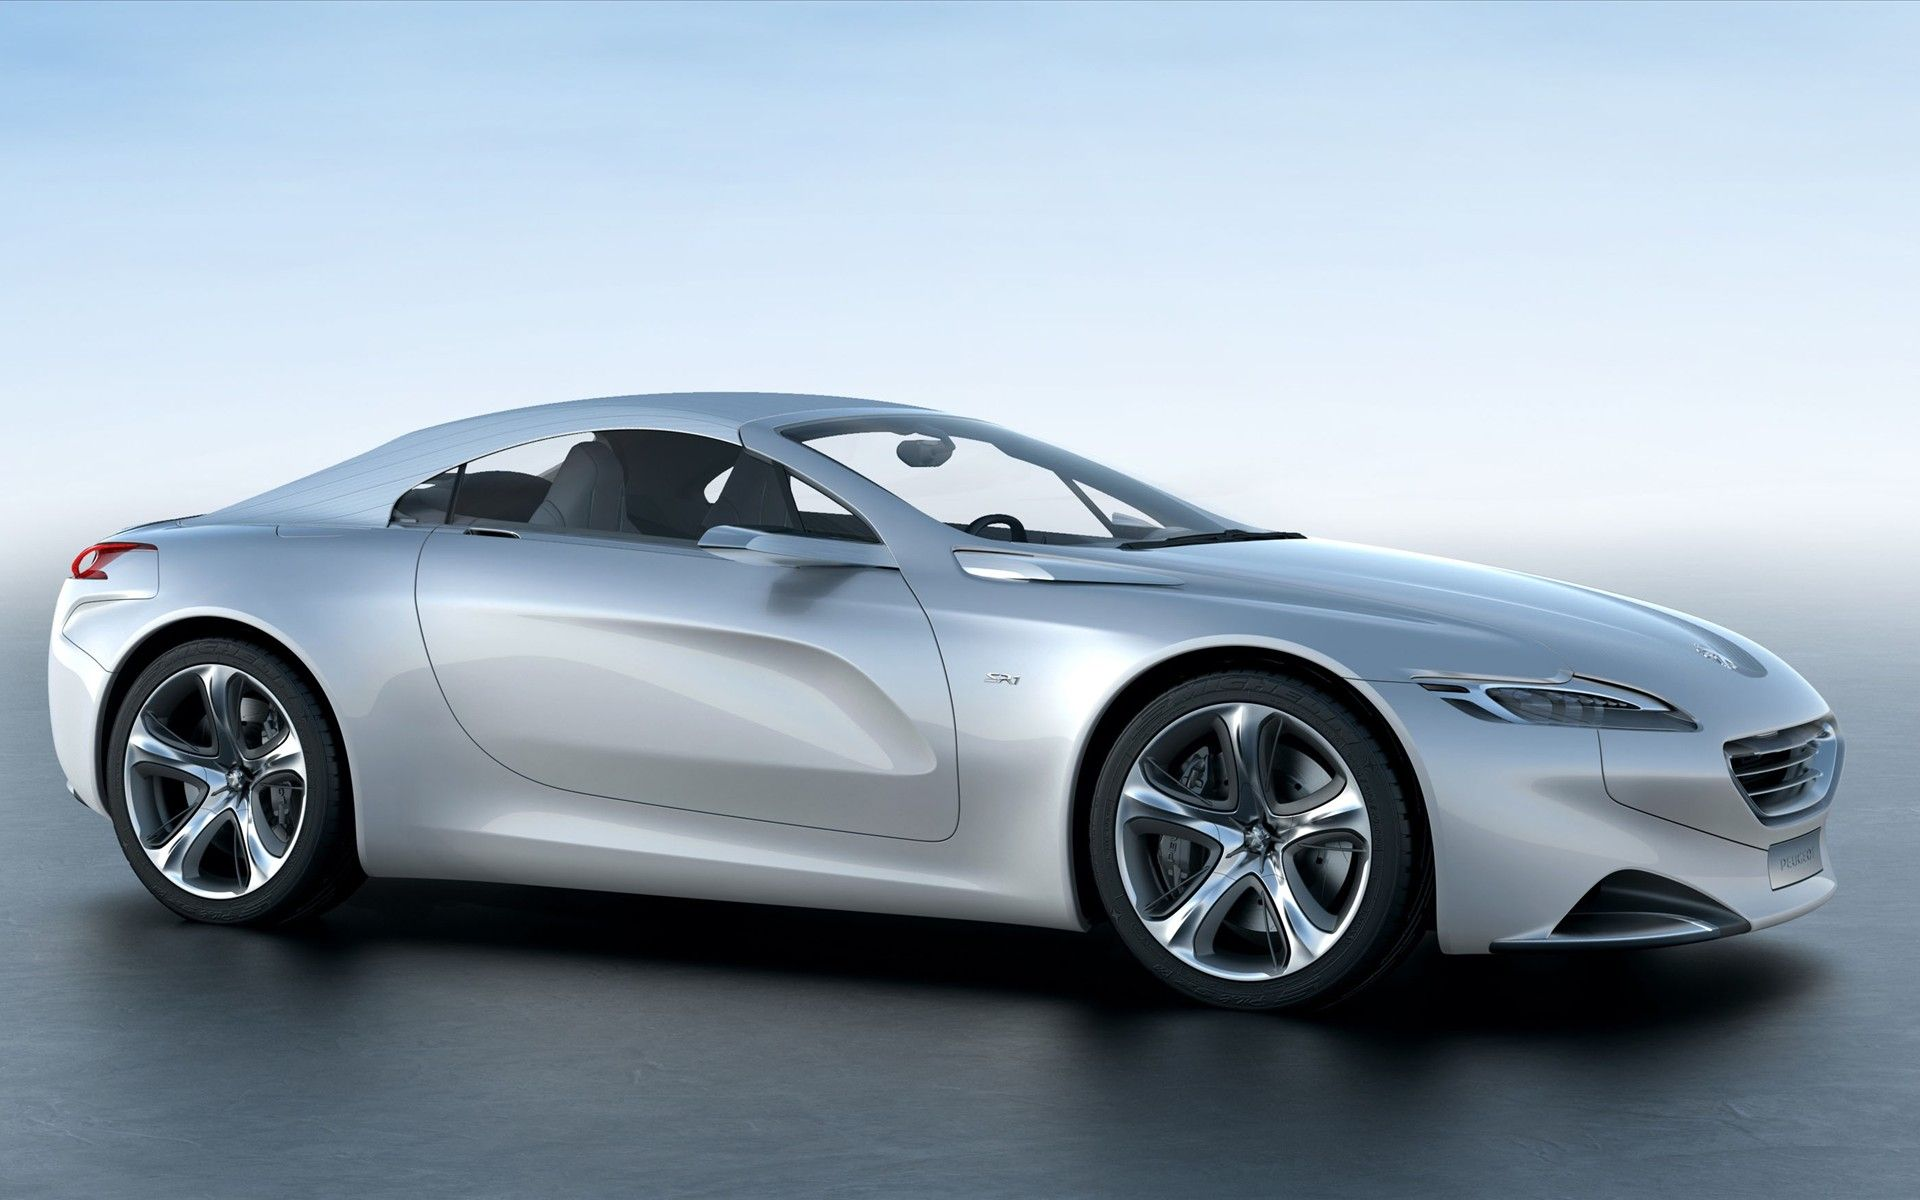 Image for 2010 Peugeot SR1 Concept Car 2 | Peugeot Cars | Pinterest ...